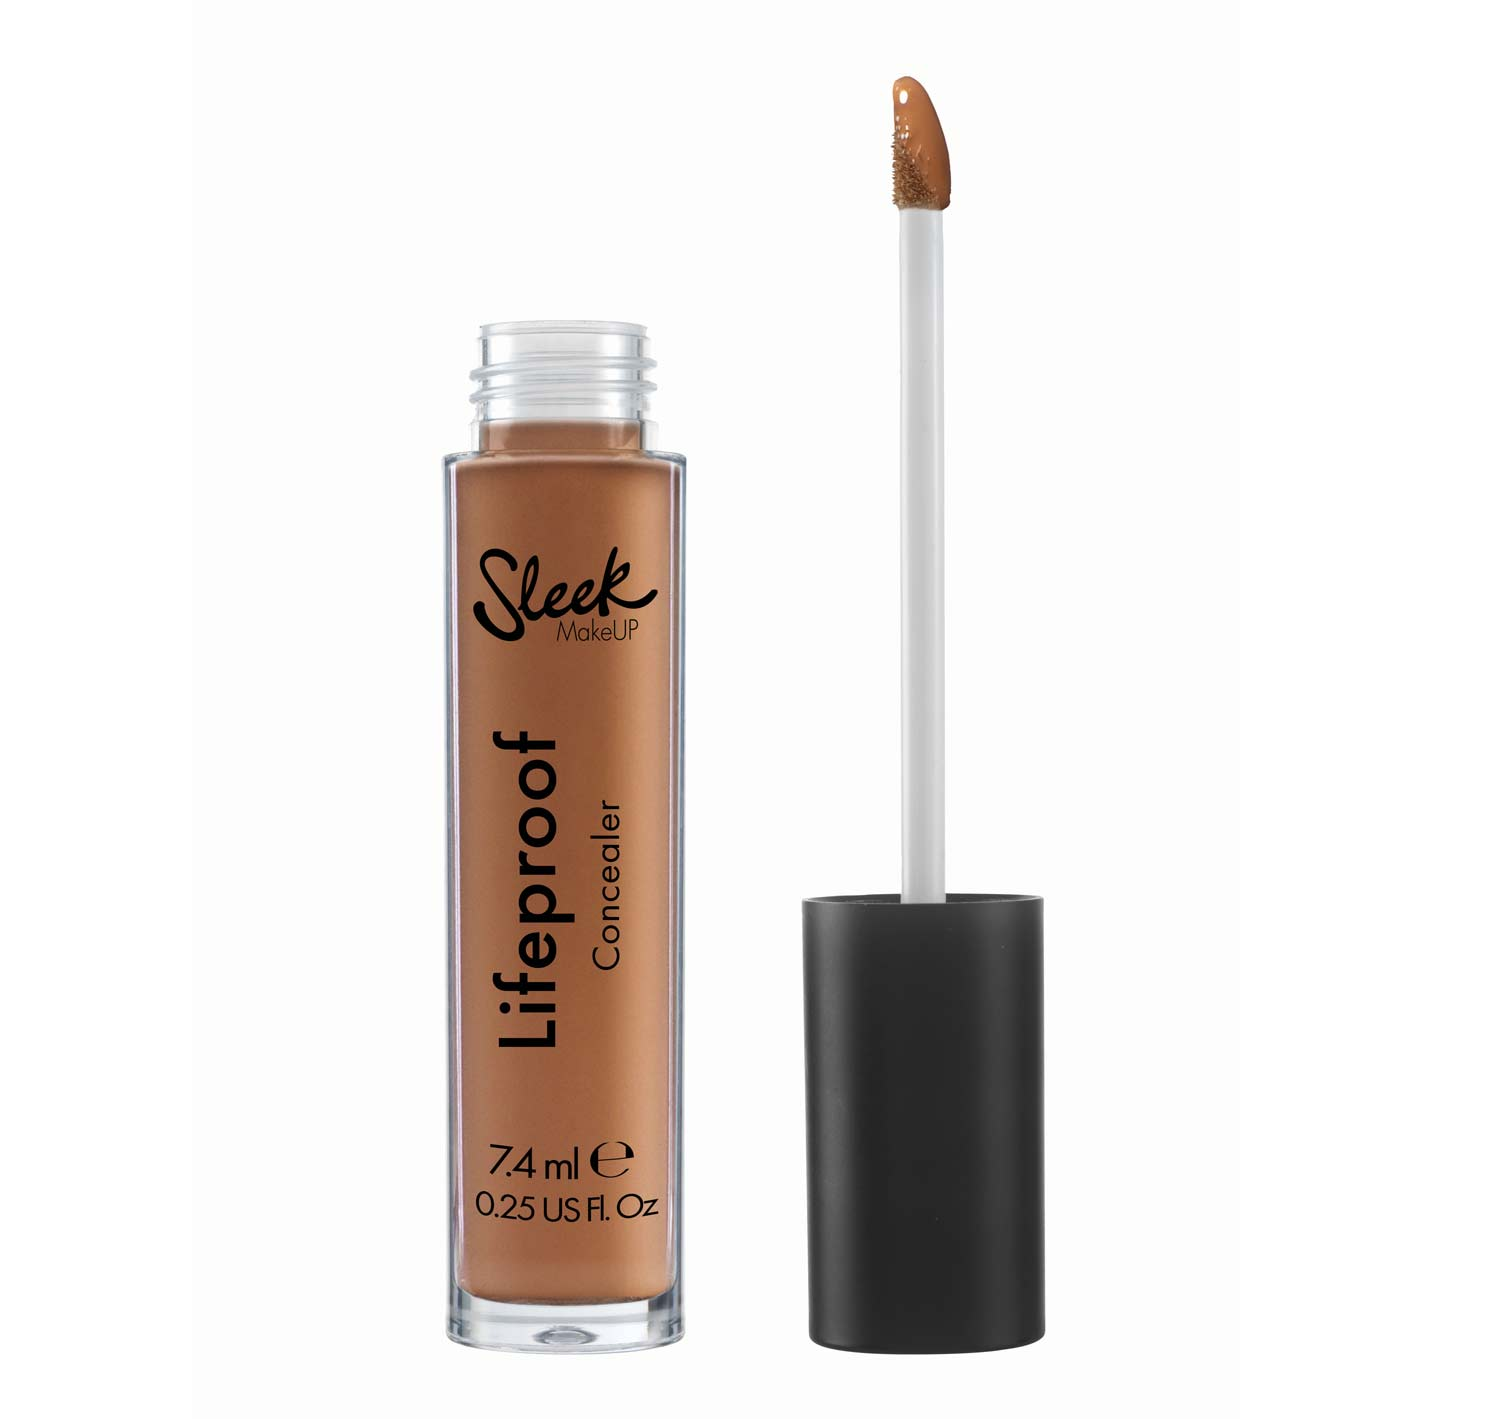 SLEEK MAKEUP Lifeproof Concealer, £6.99